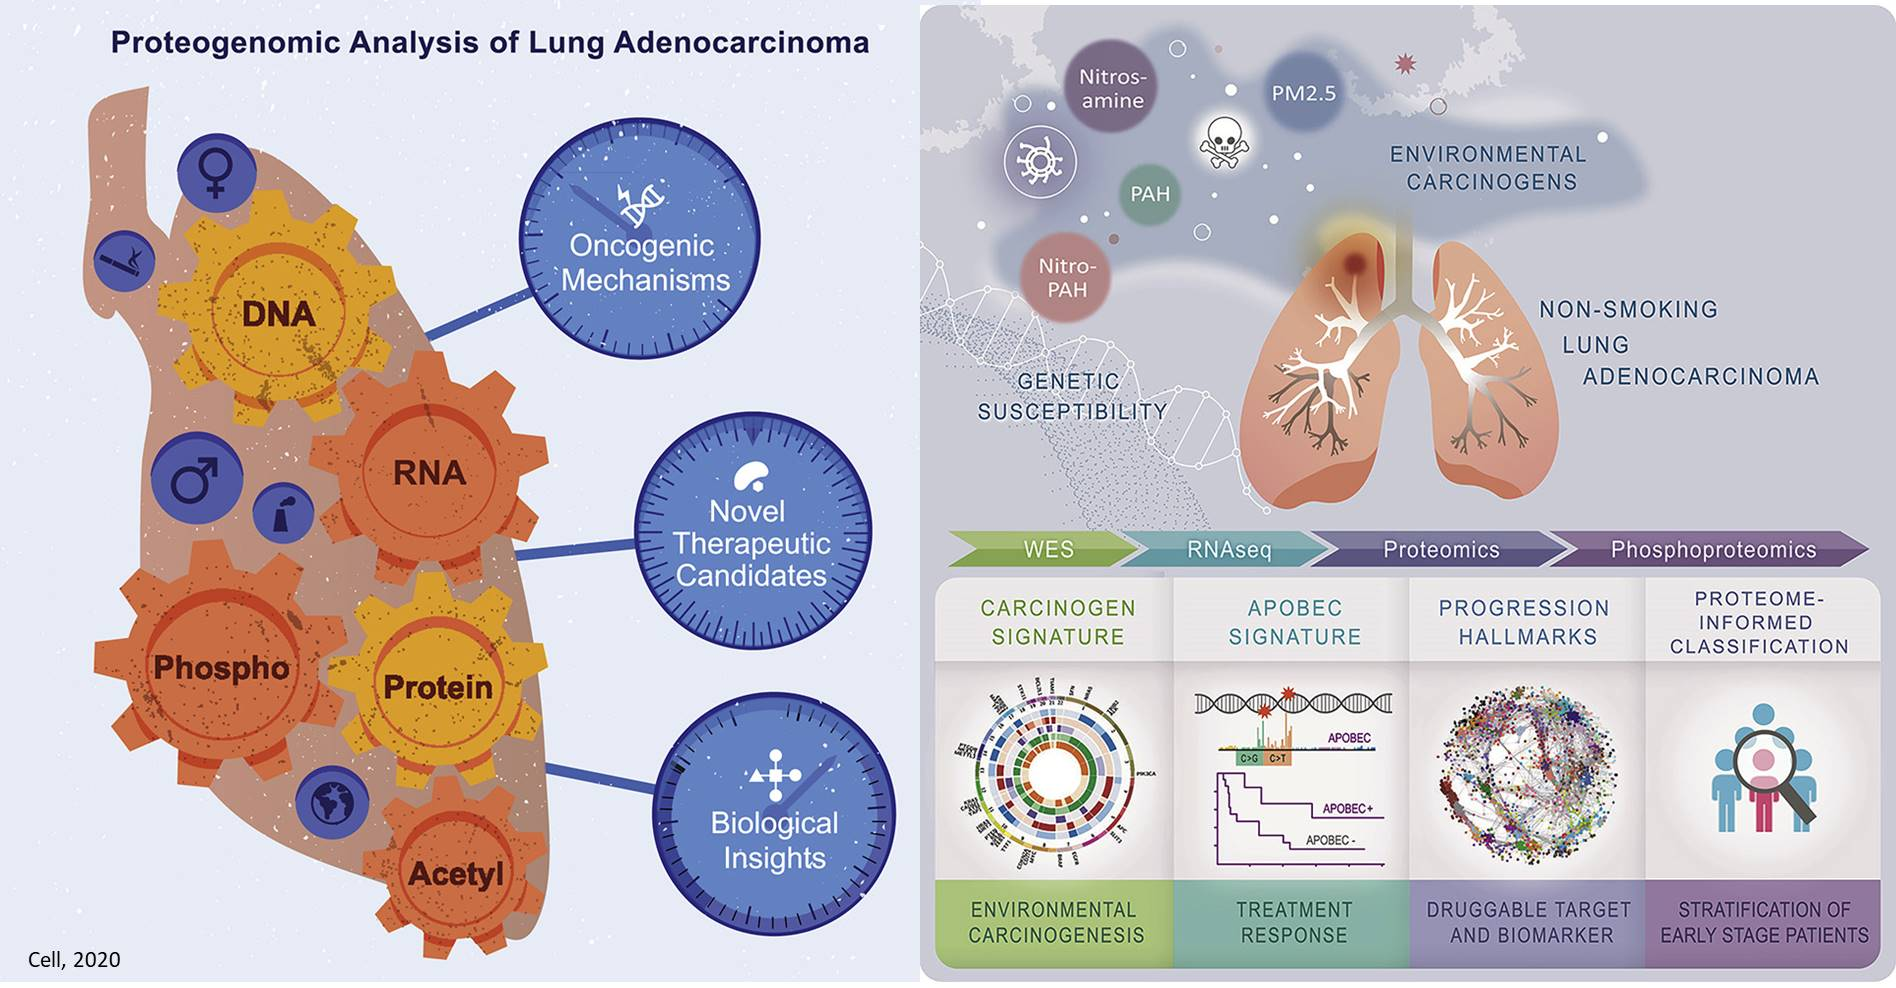 Proteogenomic Signatures of Non-smoking Lung Cancer are Different!